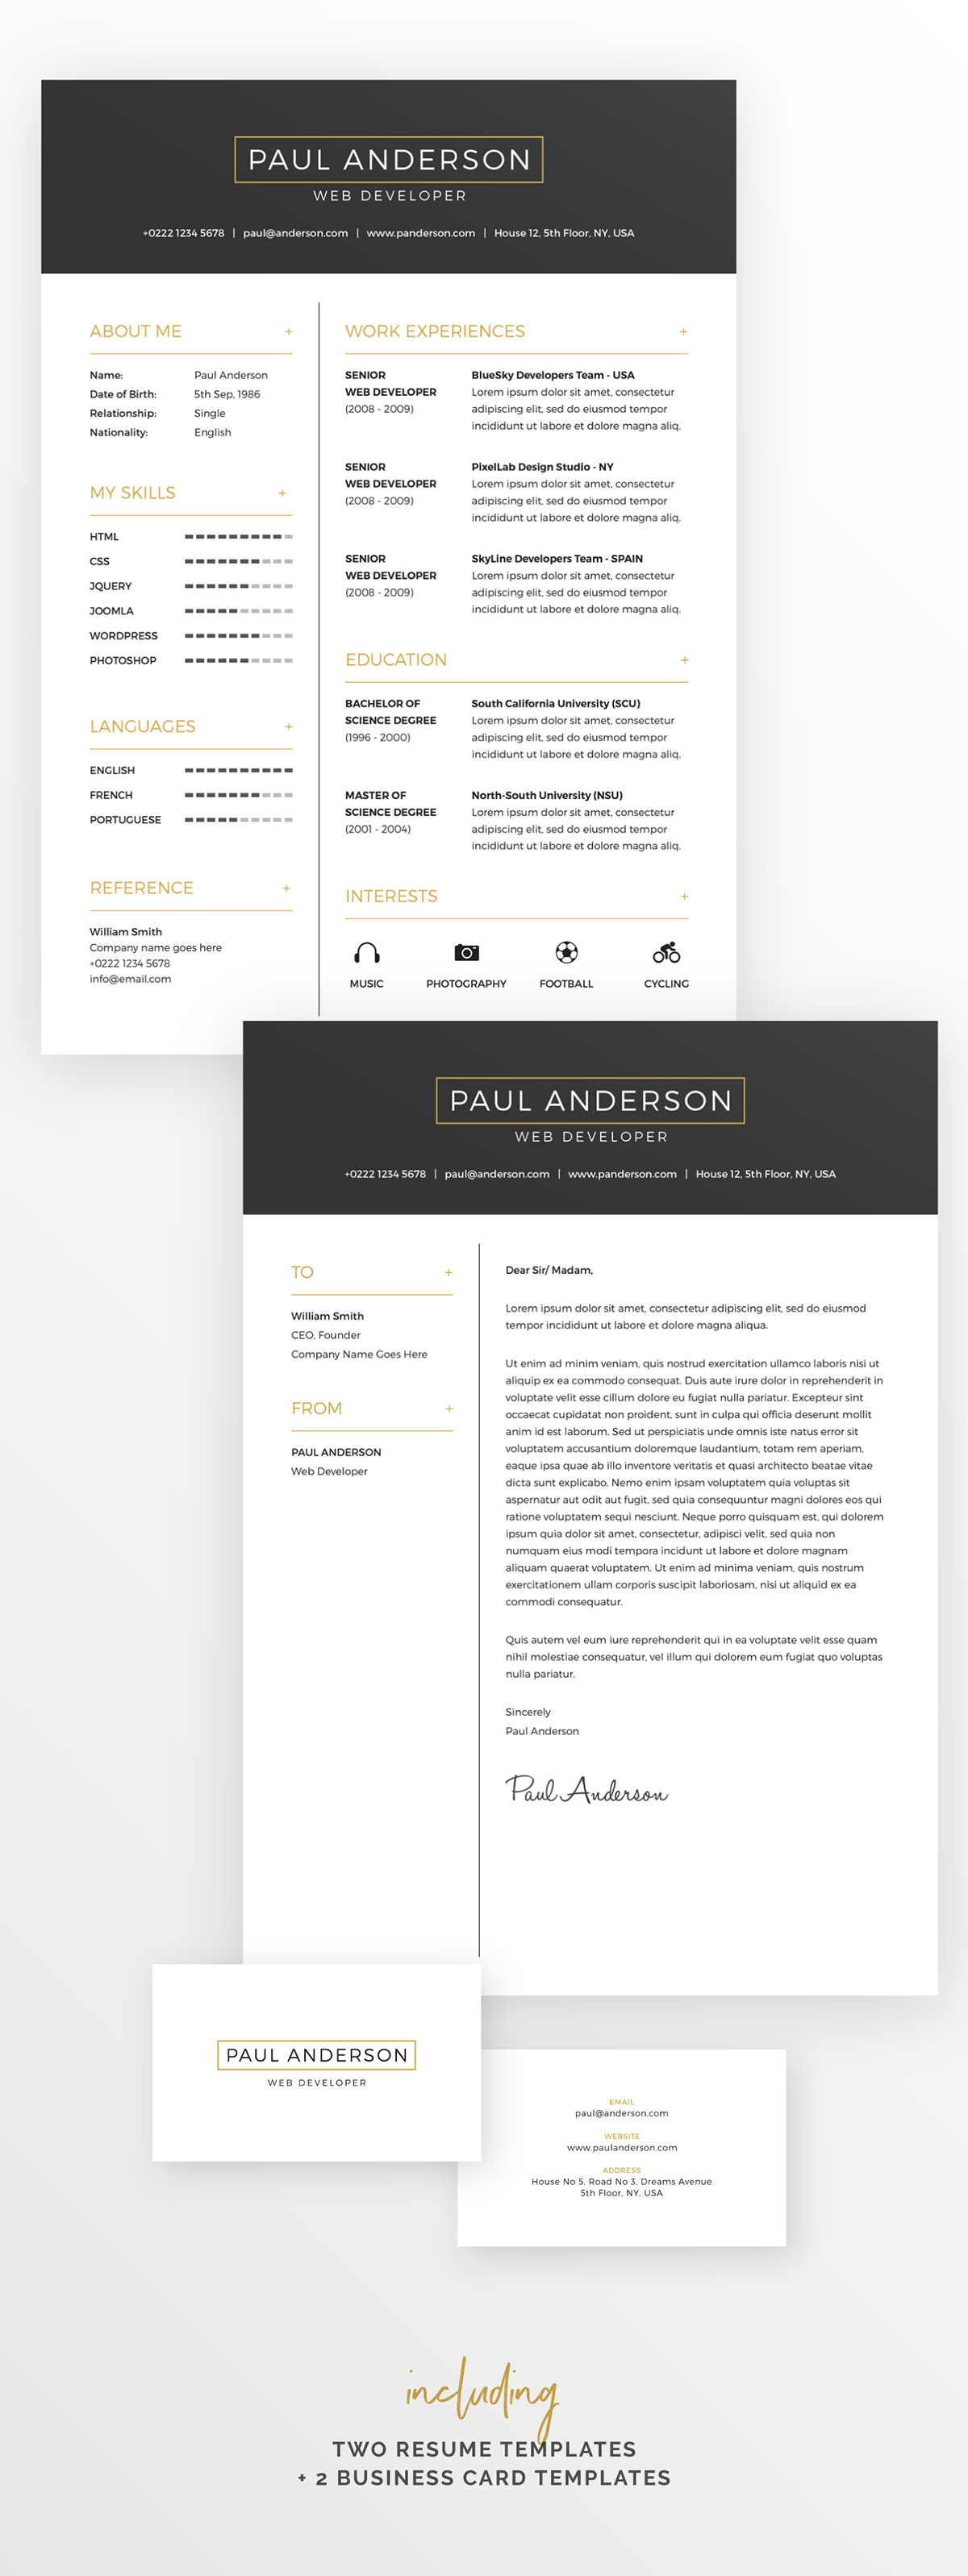 free resume cover letter template business cards on